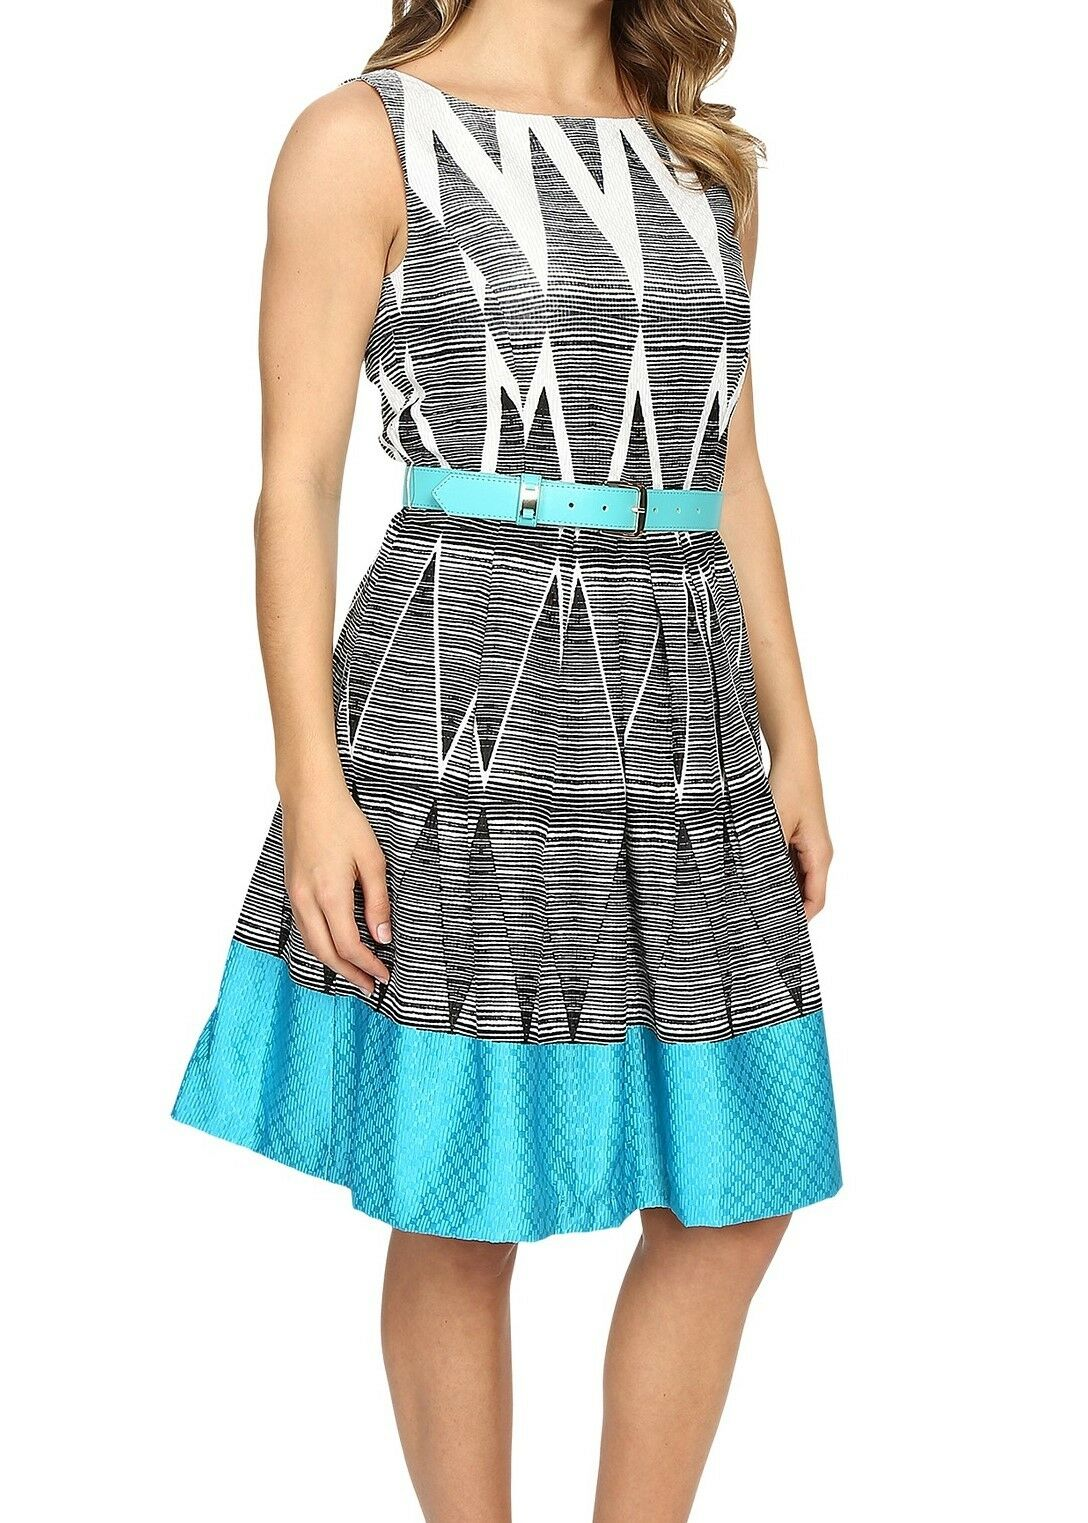 NWT MSRP MSRP MSRP  138 - TAHARI by ASL Geometric Fit & Flare Dress, Turquoise, Size 10 454ee2